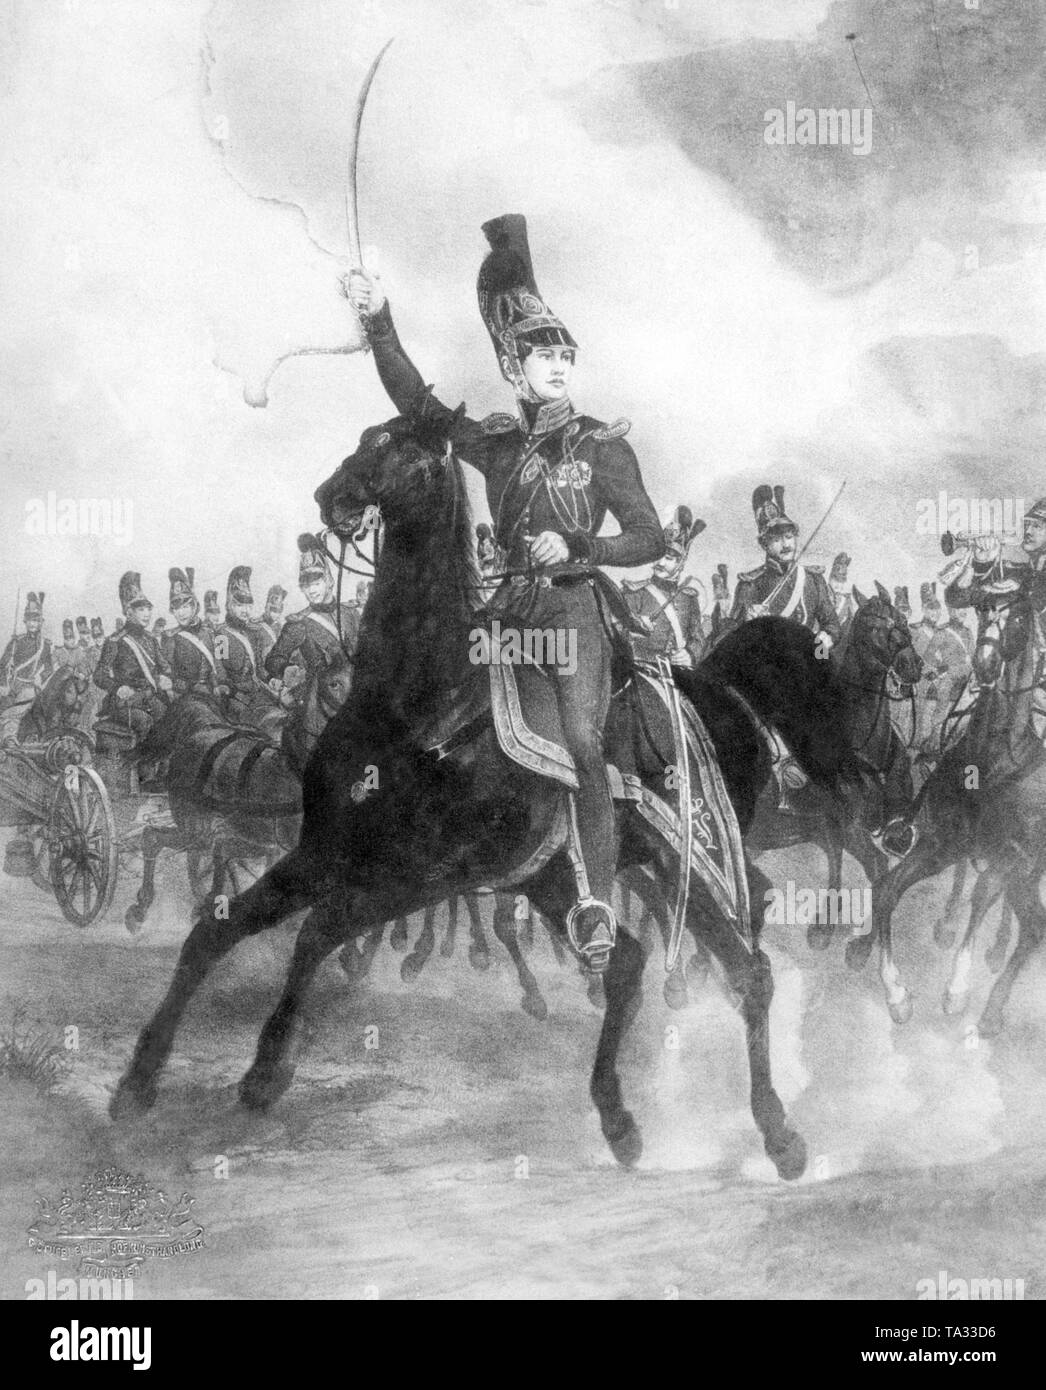 A contemporary engraving depicting the young prince Luitpold, later Prince Regent, as a young cavalry officer of the Bavarian army around 1840. - Stock Image